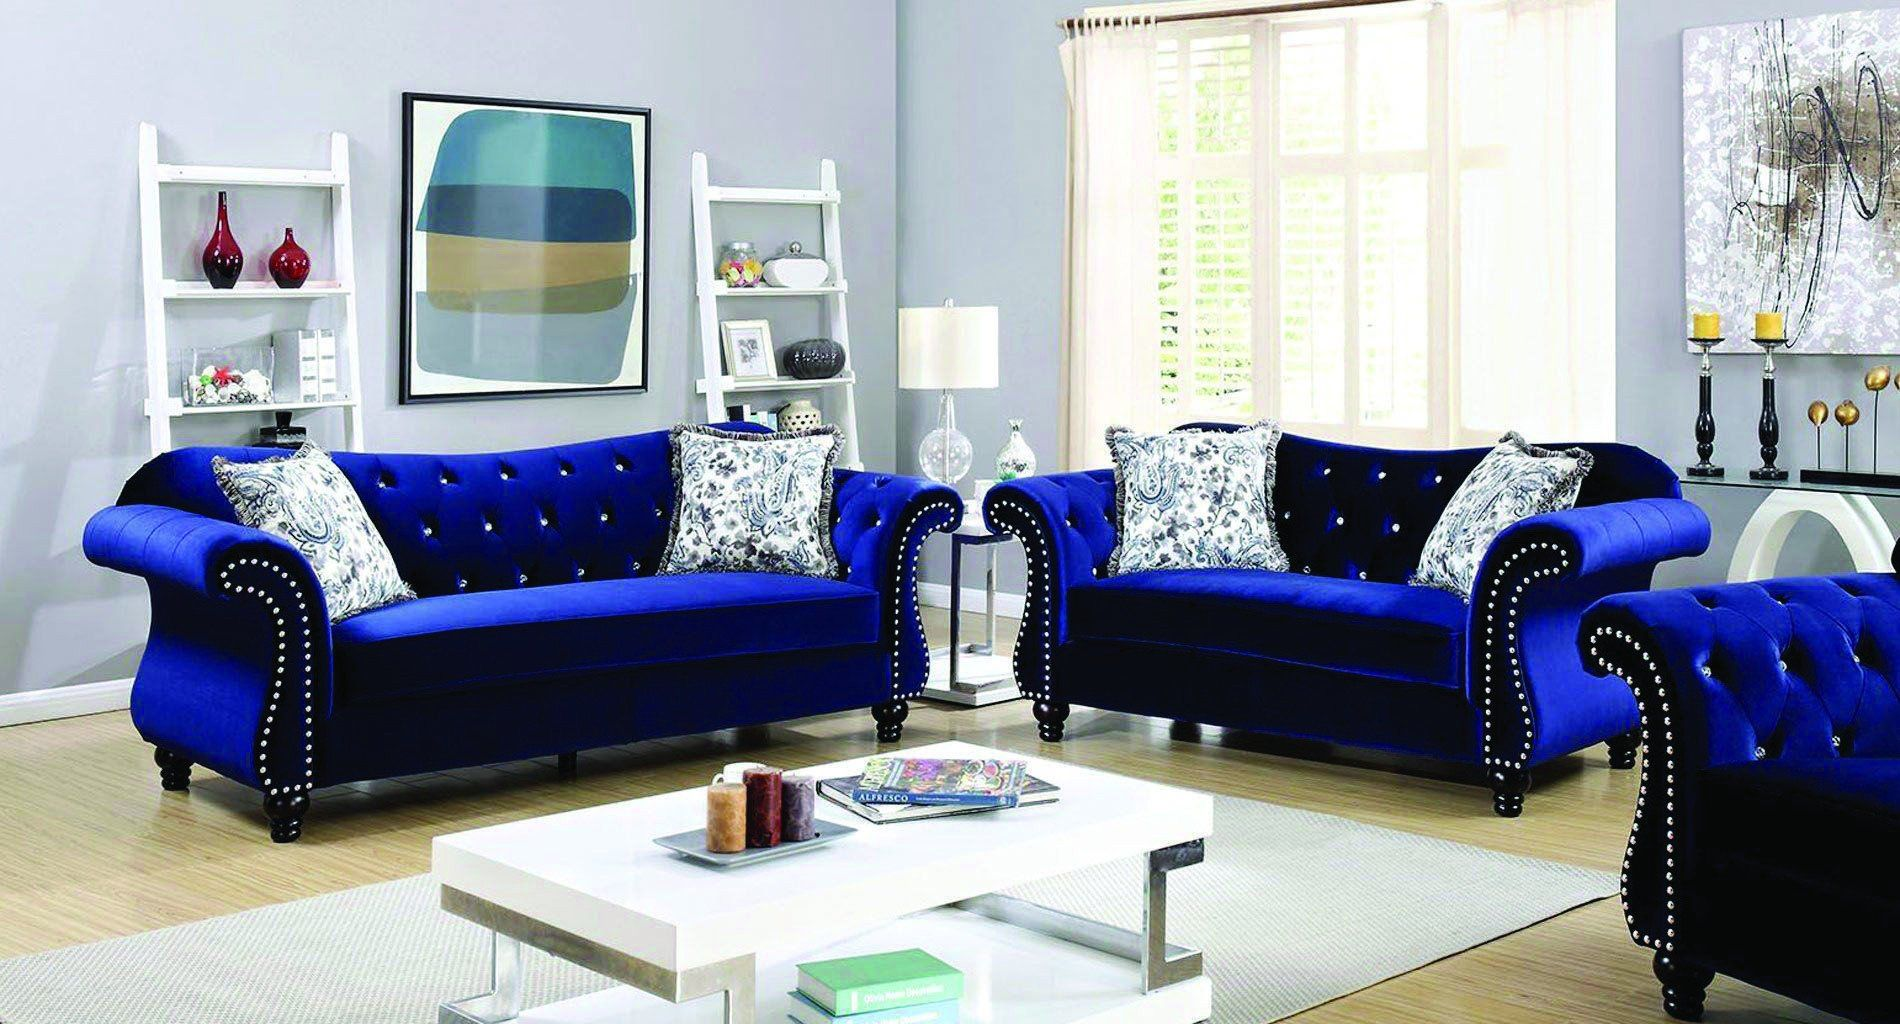 Royal Blue Living Room Furniture Incredible Blue Living Room Colour Suggestions In 2020 Blue Living Room Decor Blue Furniture Living Room Blue Sofas Living Room